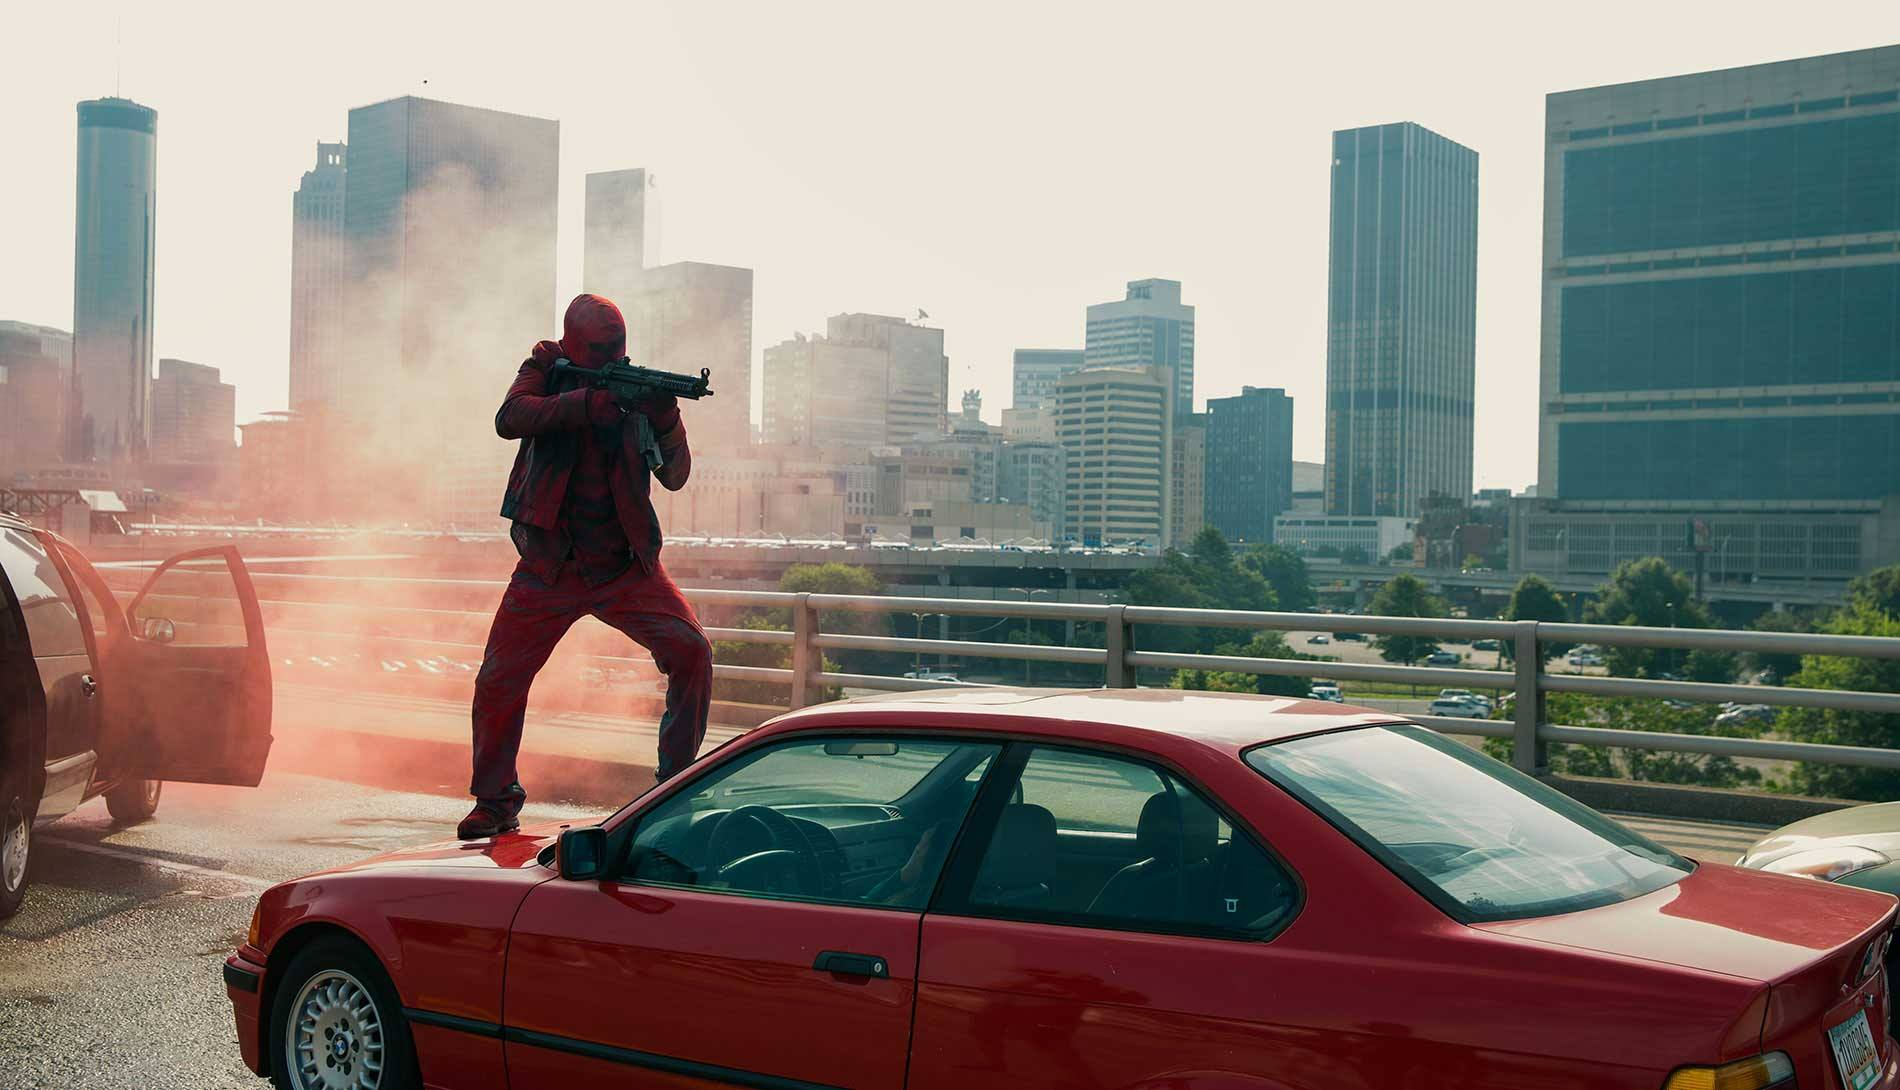 Triple 9, a new film directed by John Hillcoat, follows a group of corrupt police and criminals as they are blackmailed by the Russian mafia.